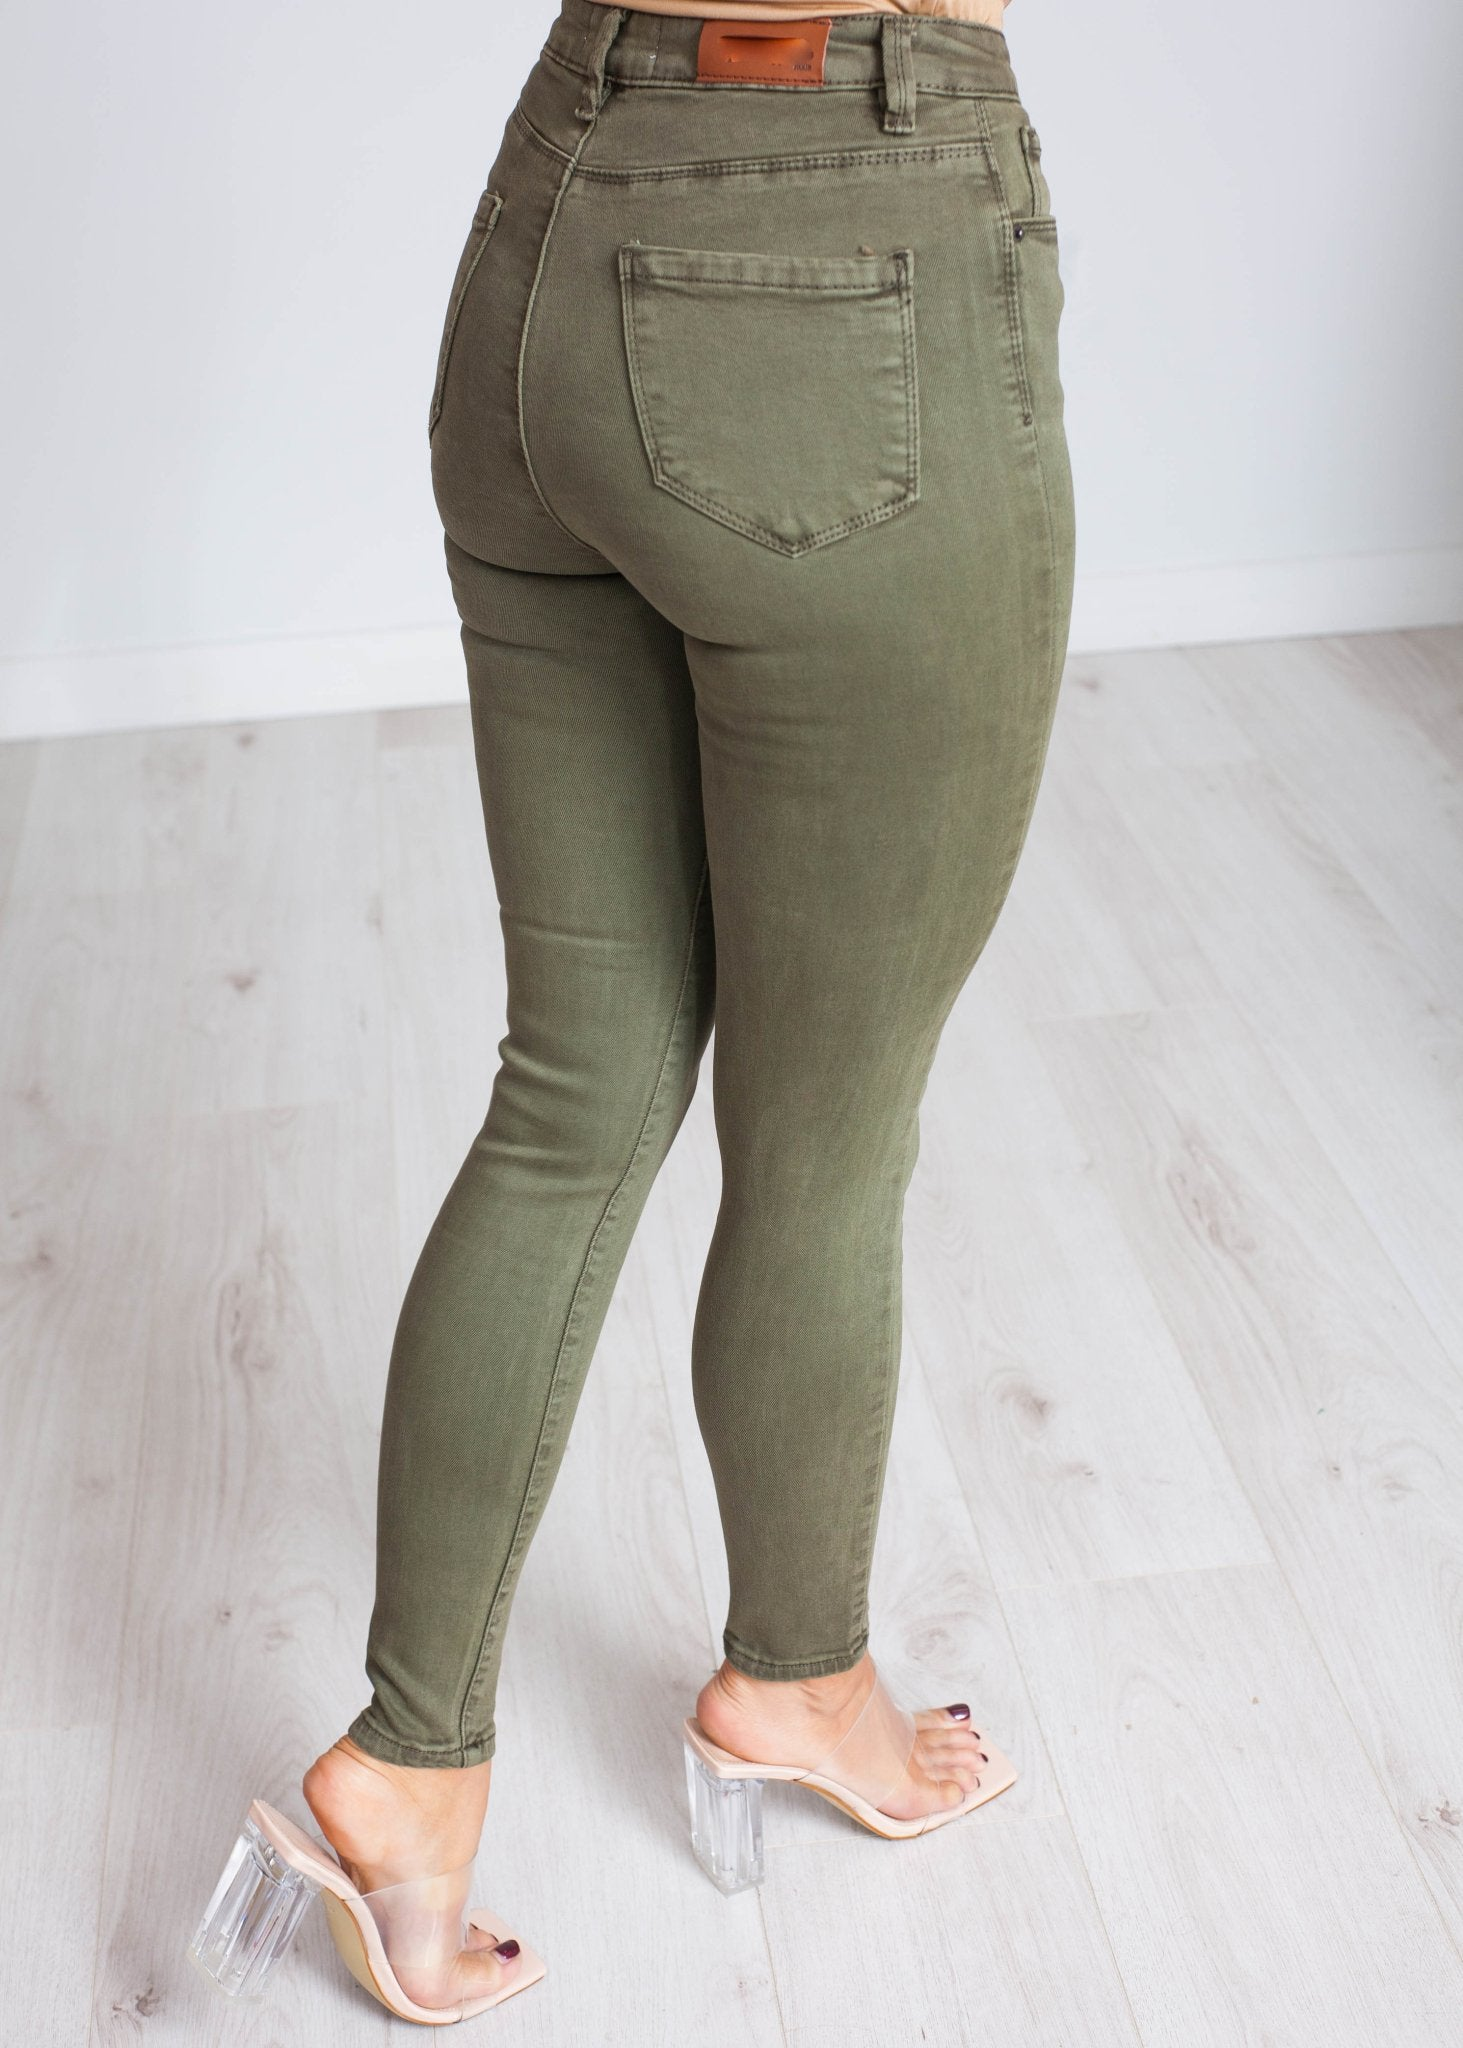 Alexa High Waist Skinny Jean In Khaki - The Walk in Wardrobe